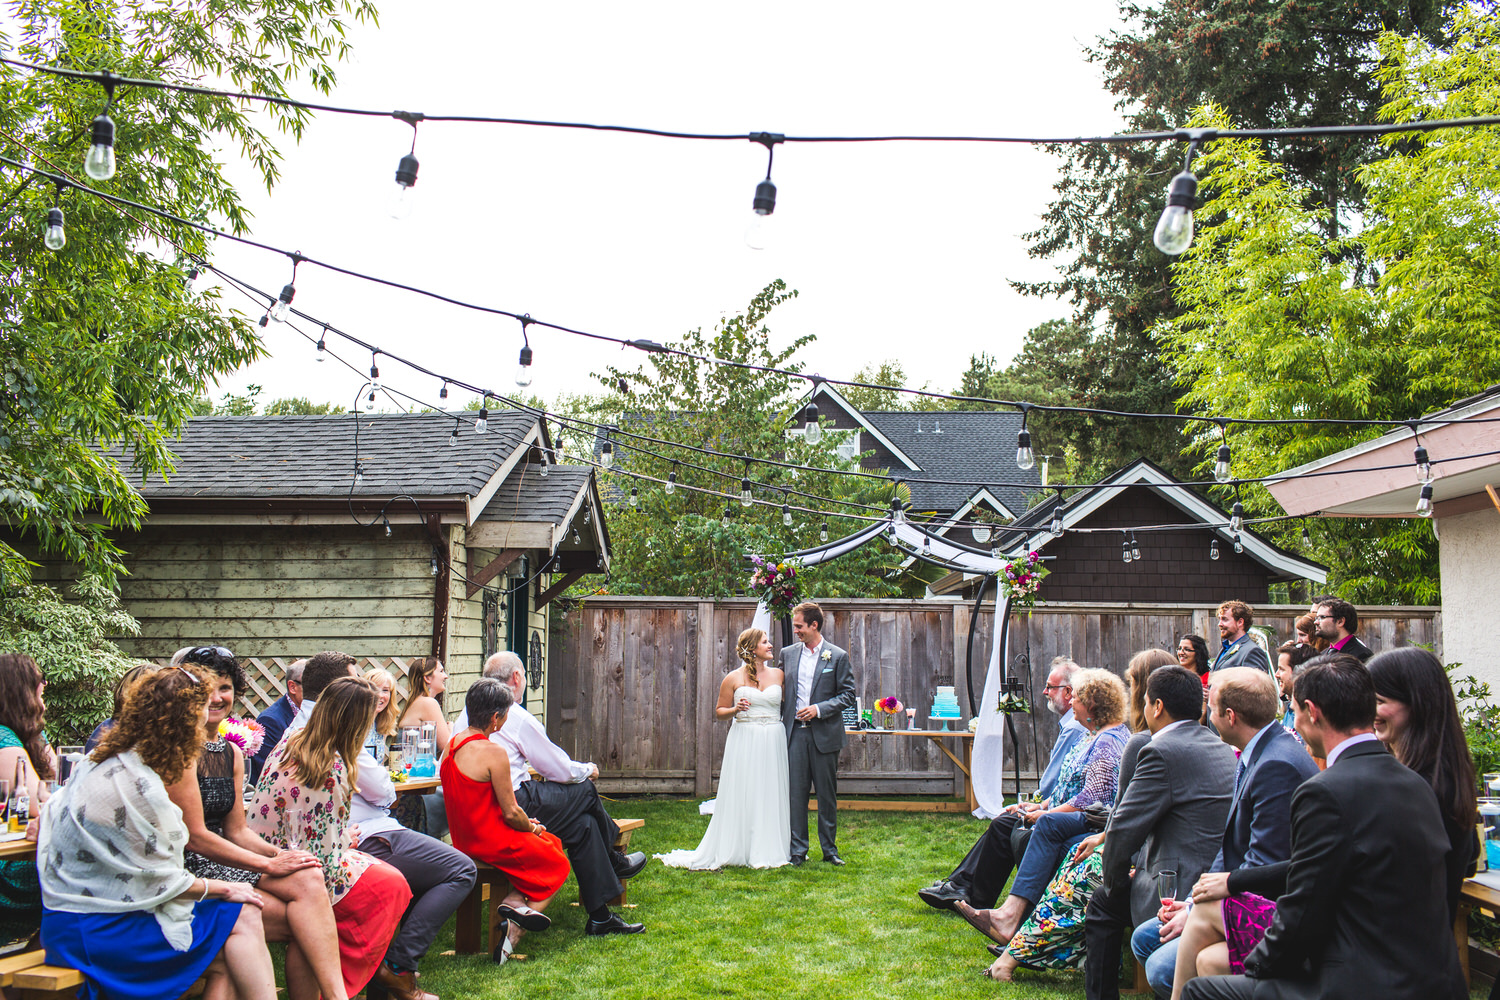 Backyard wedding in Tsawwassen